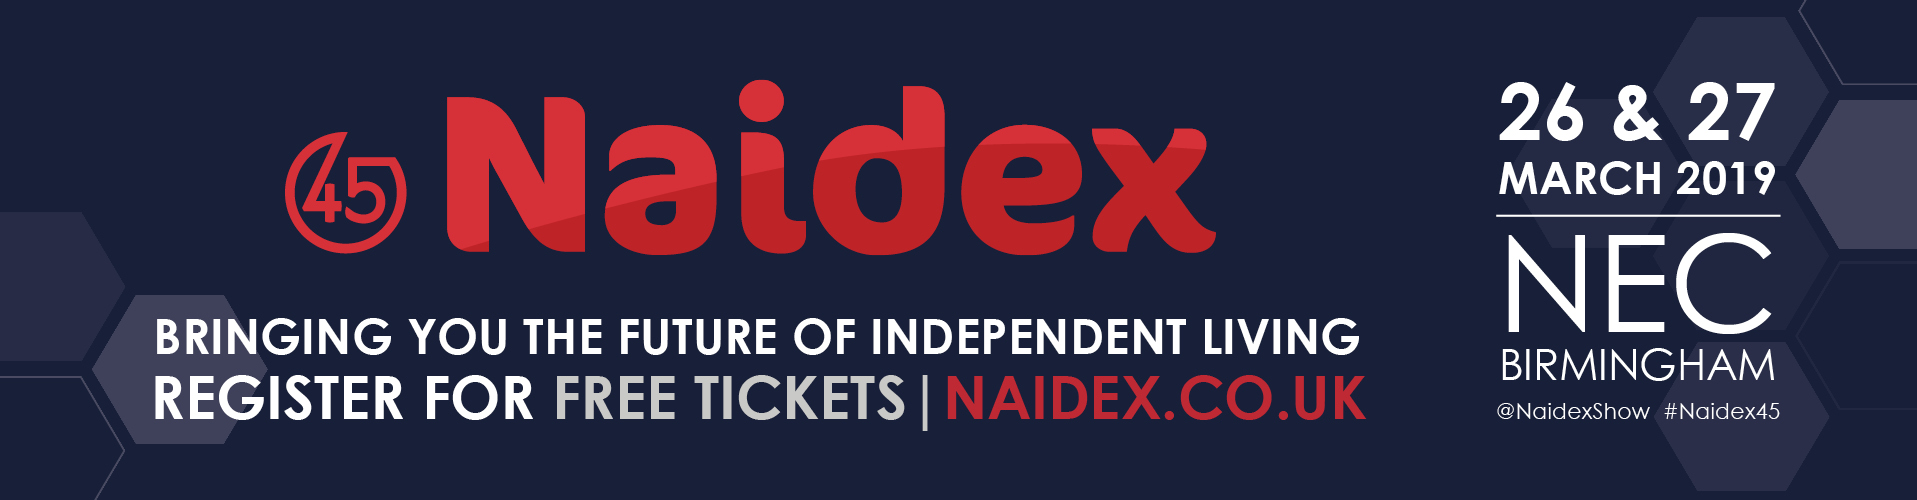 Get your free tickets for Naidex 45 on 26th and 27th March 2019 at the NEC, Birmingham.